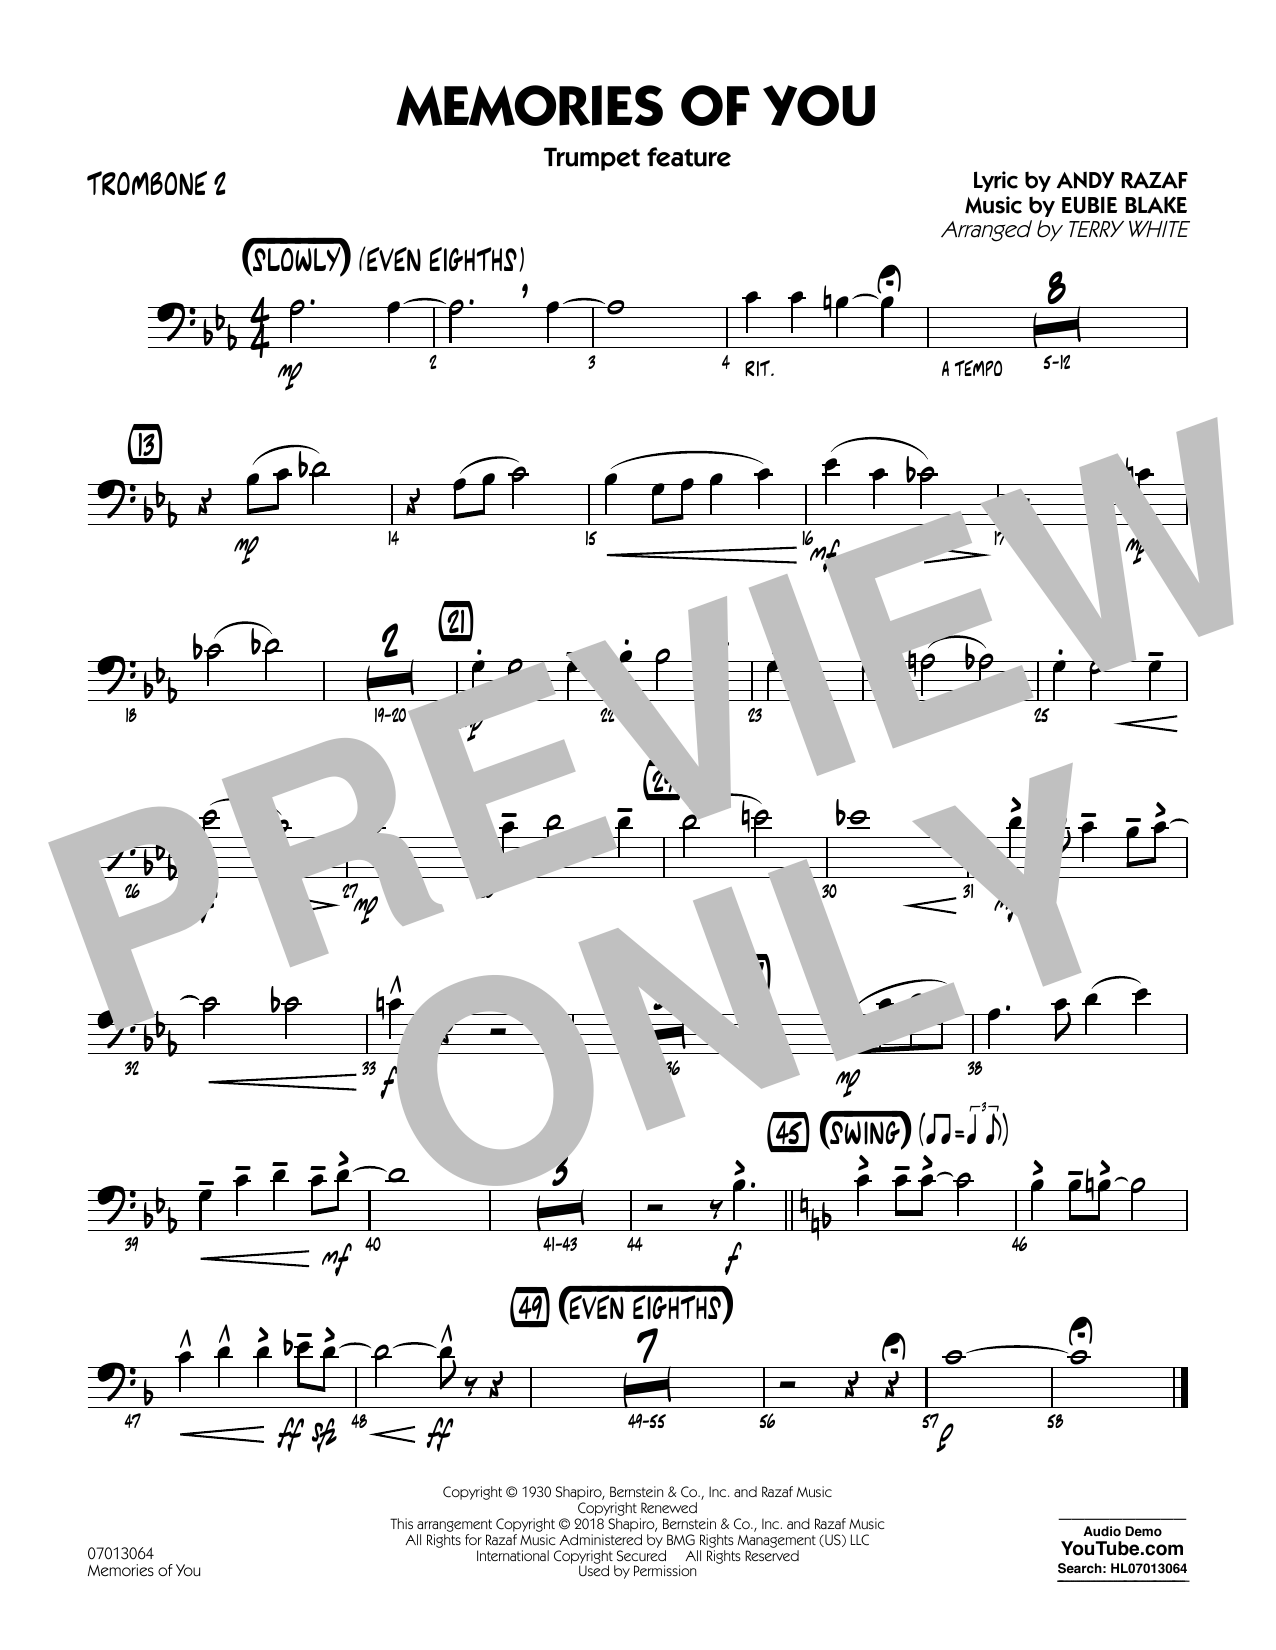 Terry White Memories of You (Trumpet Feature) - Trombone 2 sheet music notes and chords. Download Printable PDF.